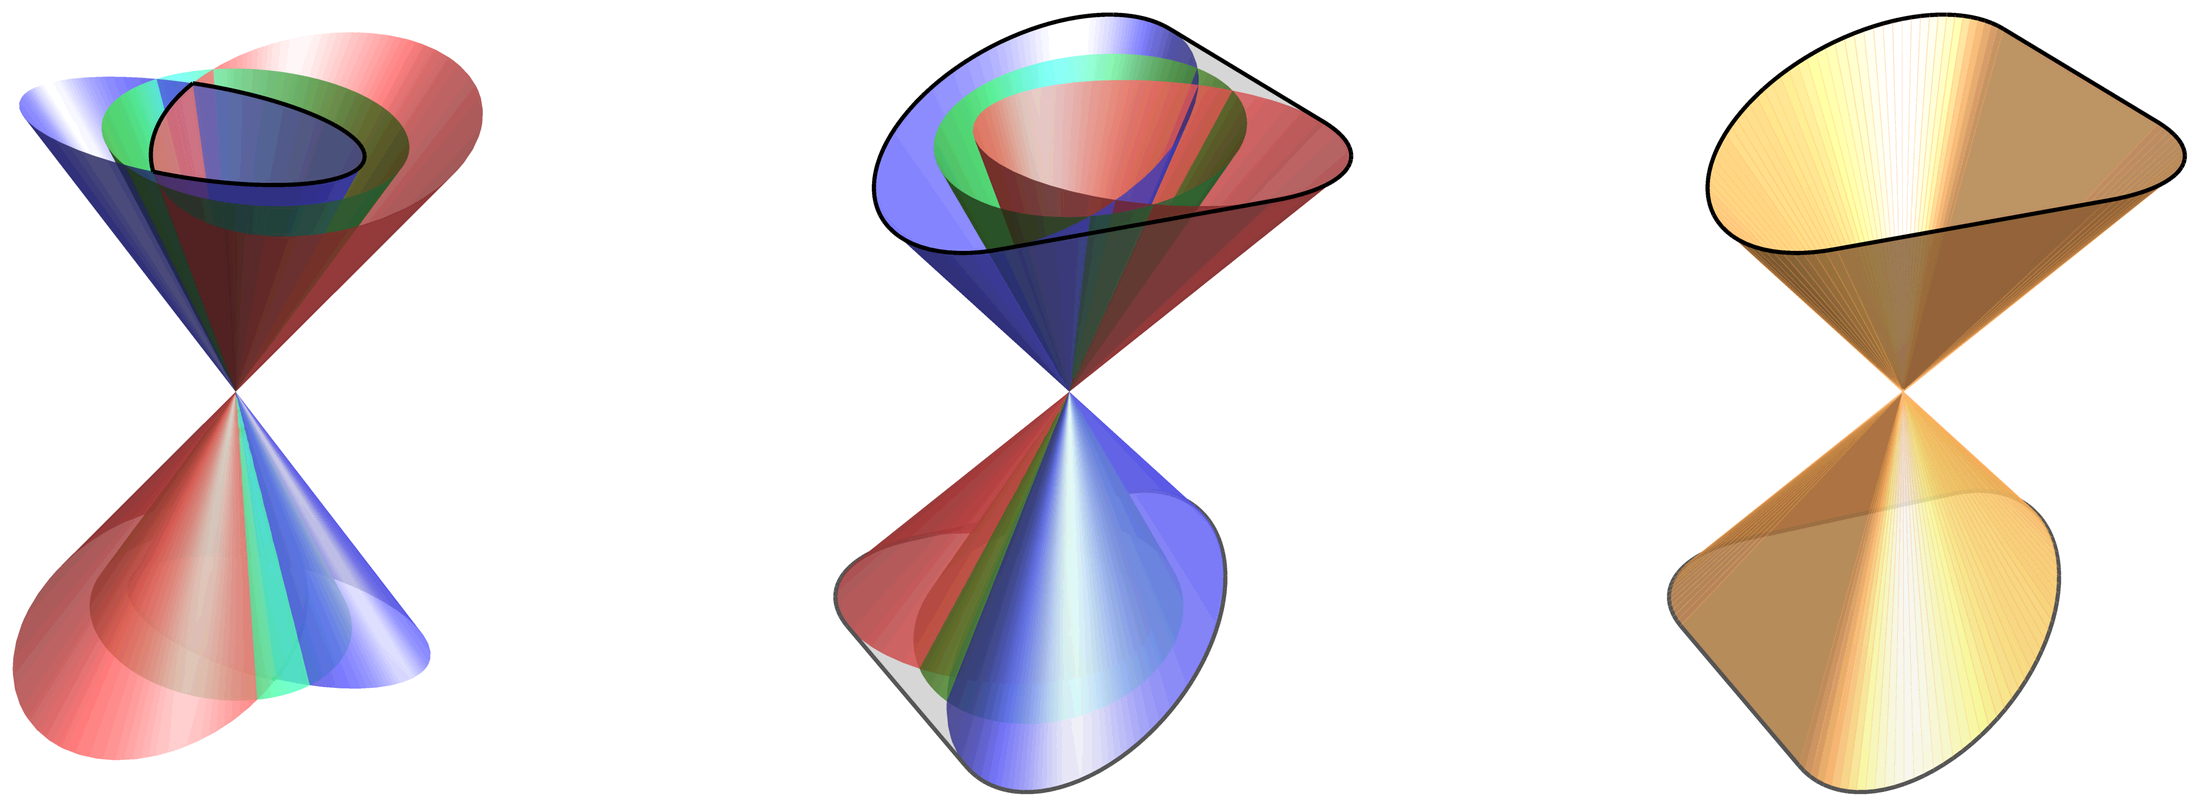 The normal cone (a) of the evolution equations for the constraint violations in the cotangent space, and the corresponding ray cone (b) in the tangent space. The geometric mean cones (shown in green) are not part of the normal or the ray cone. The causal cone (c) is the convex hull of the causal cones of of the two individual systems, which encloses the ray cones (b).